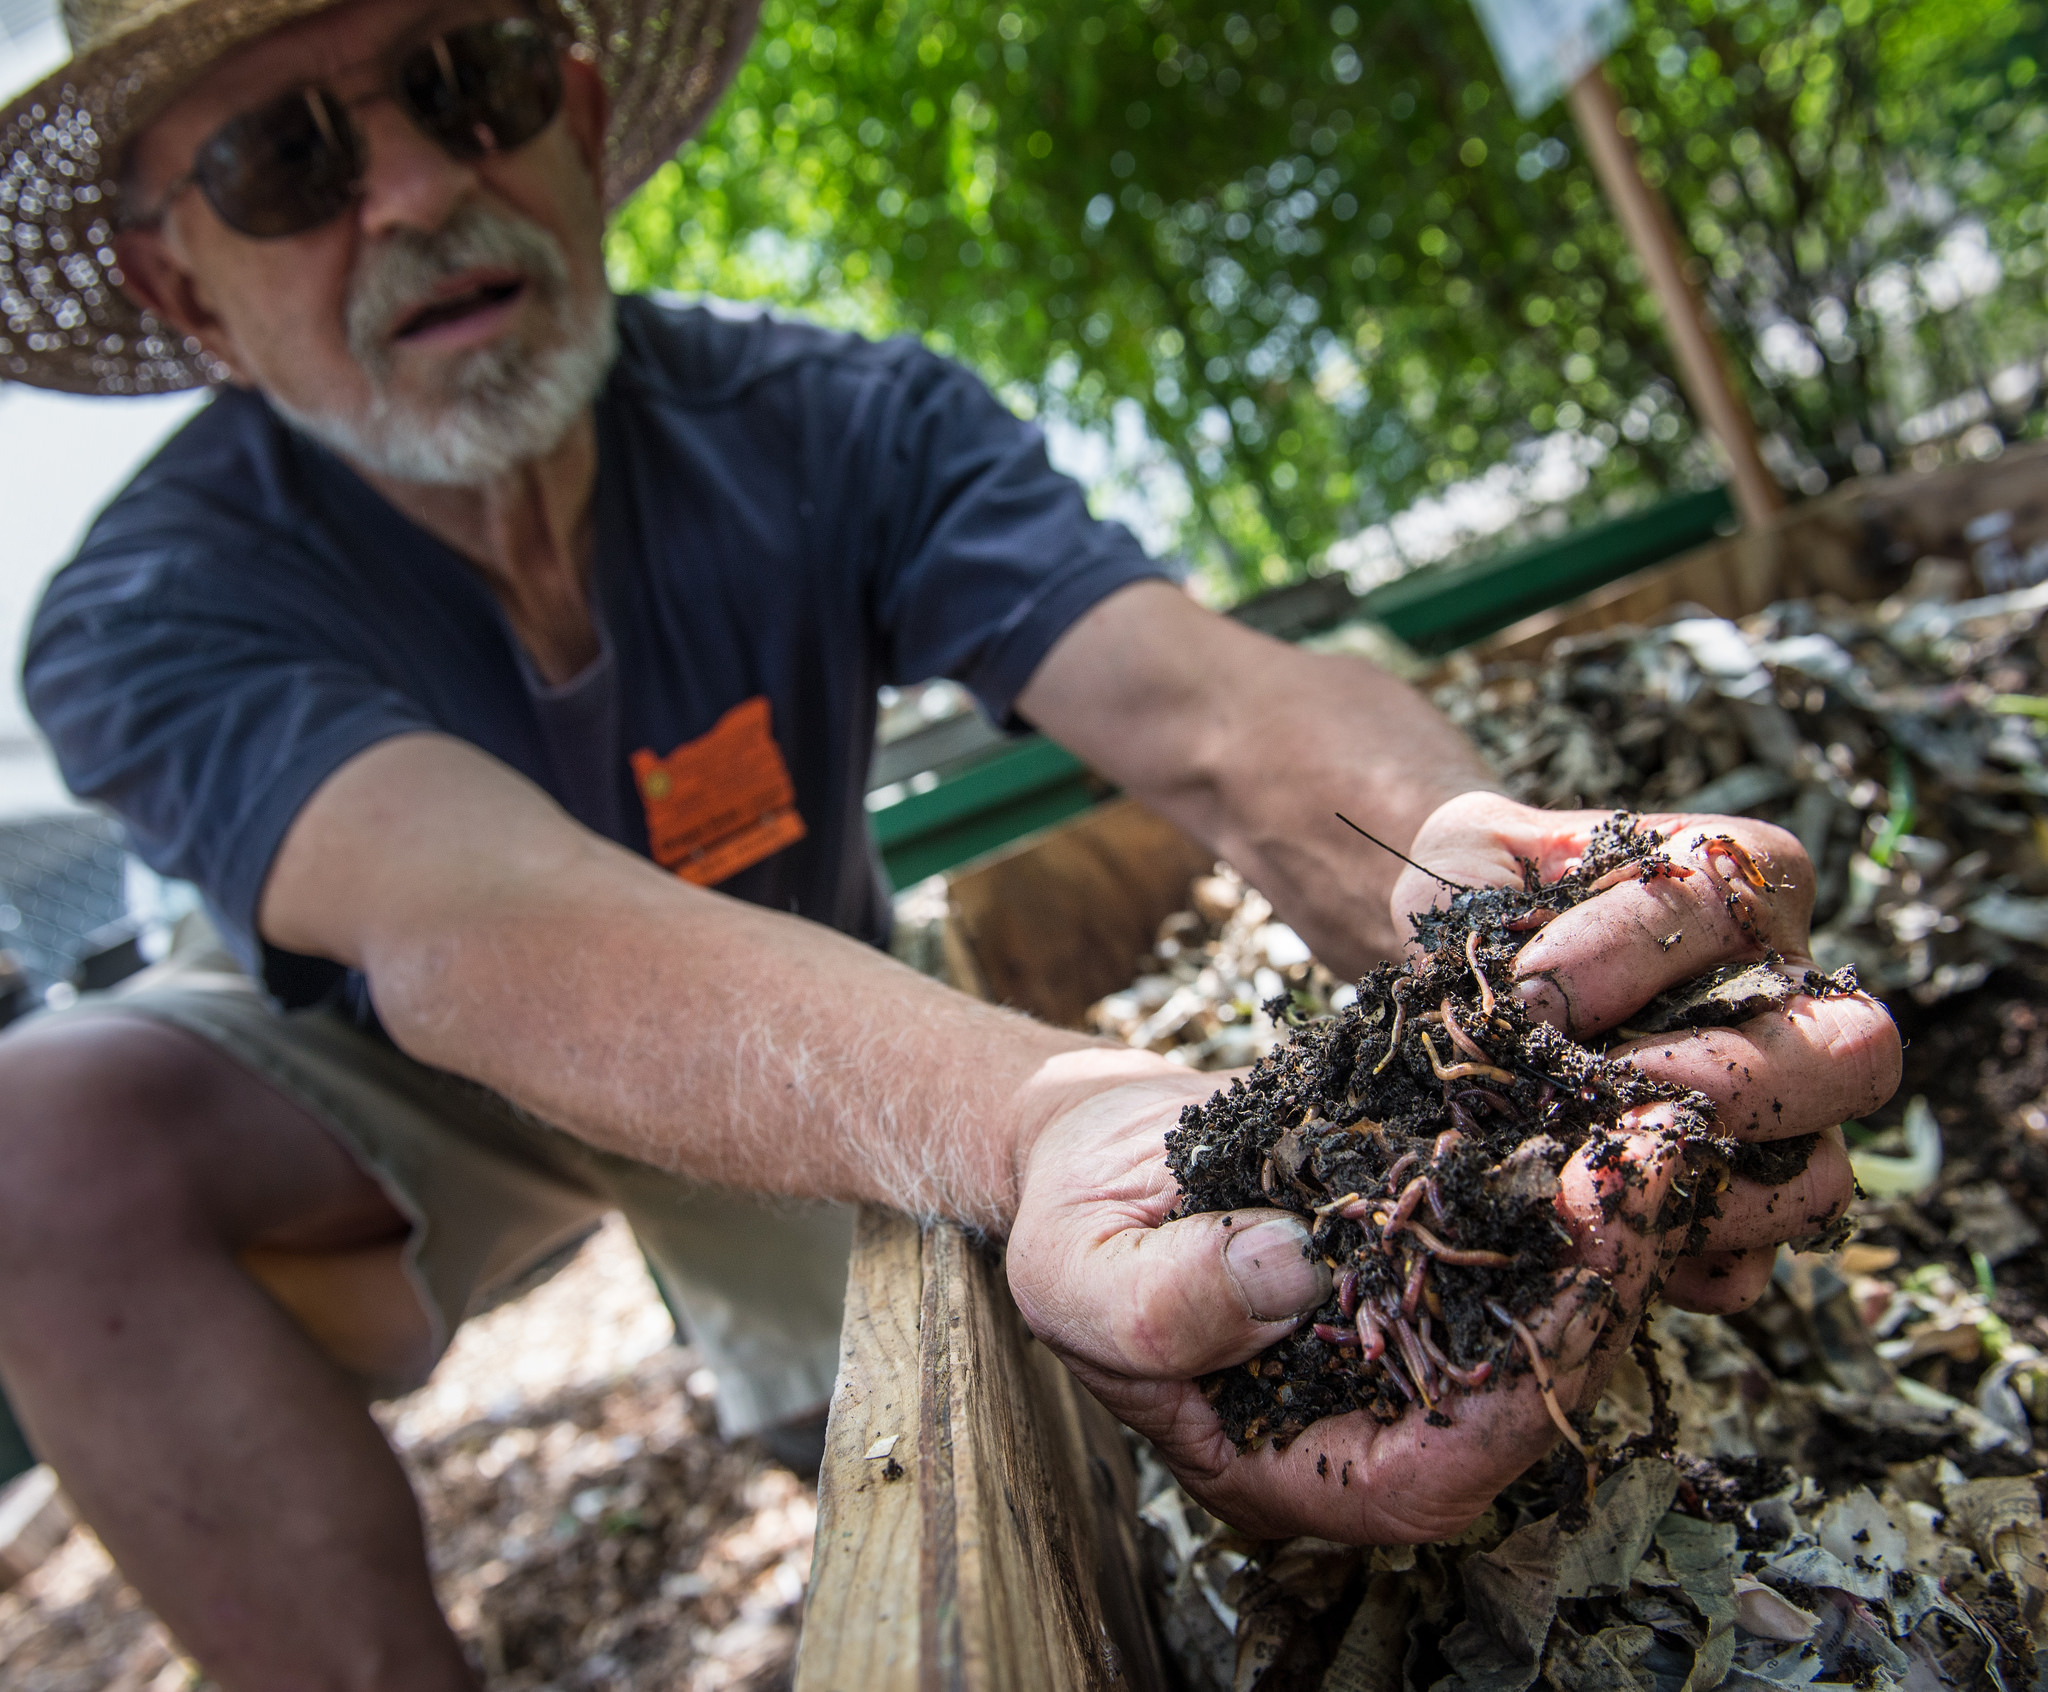 Red worms turn kitchen waste to gold